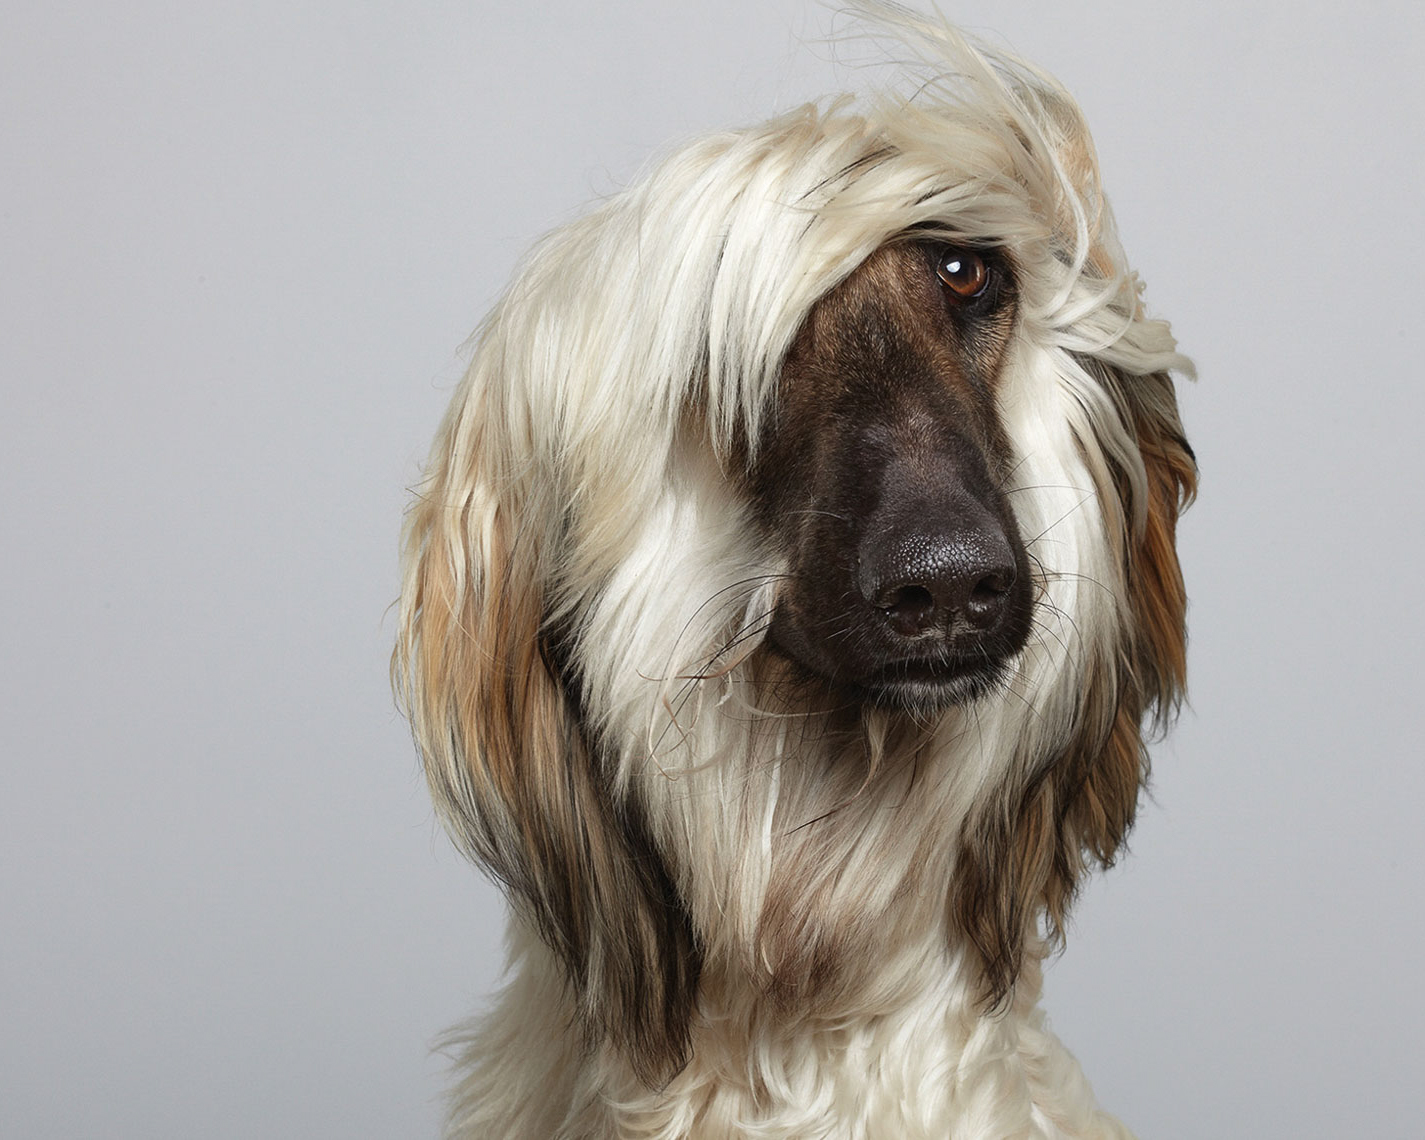 dog pet commercial animal photographer san francisco bay area pet portrait  Afghan  hound canine